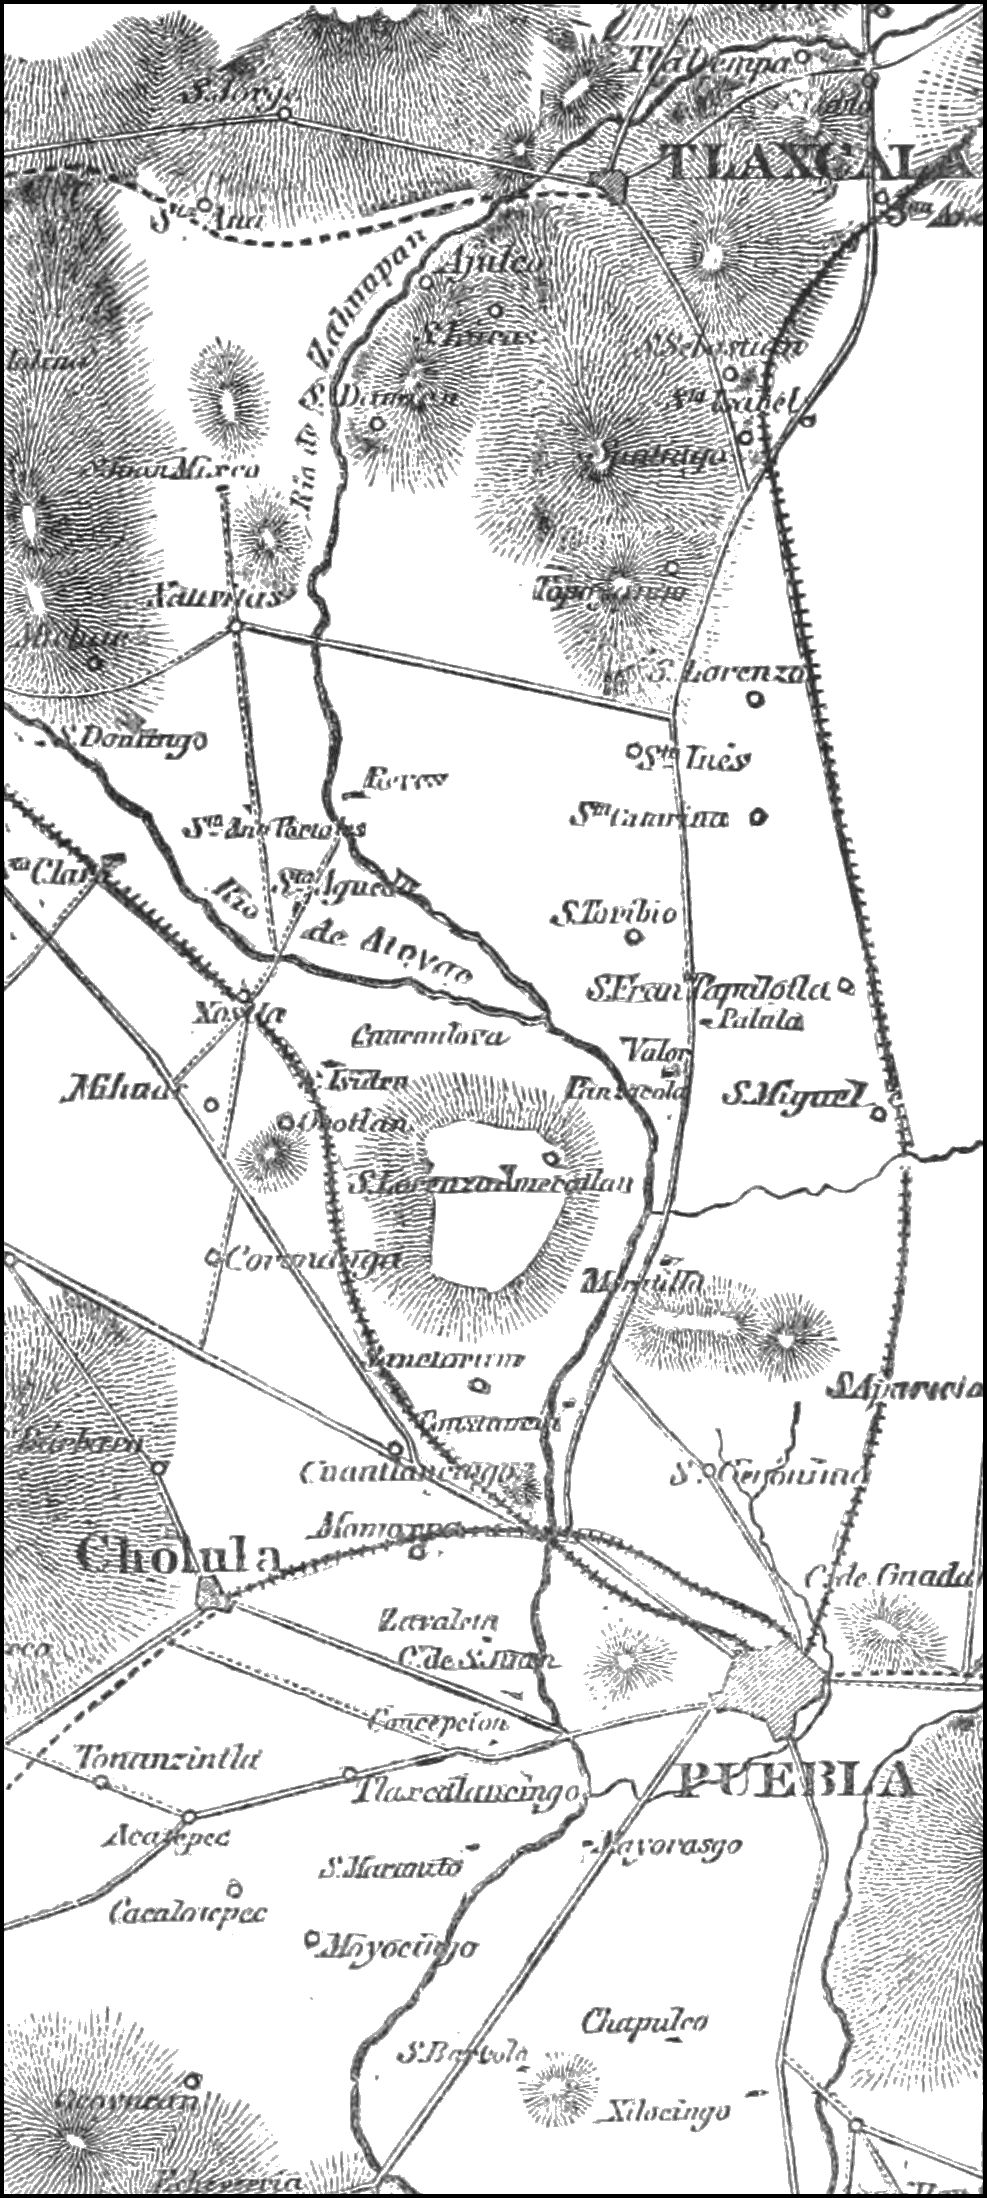 TLM D511 Puebla and vicinity.jpg